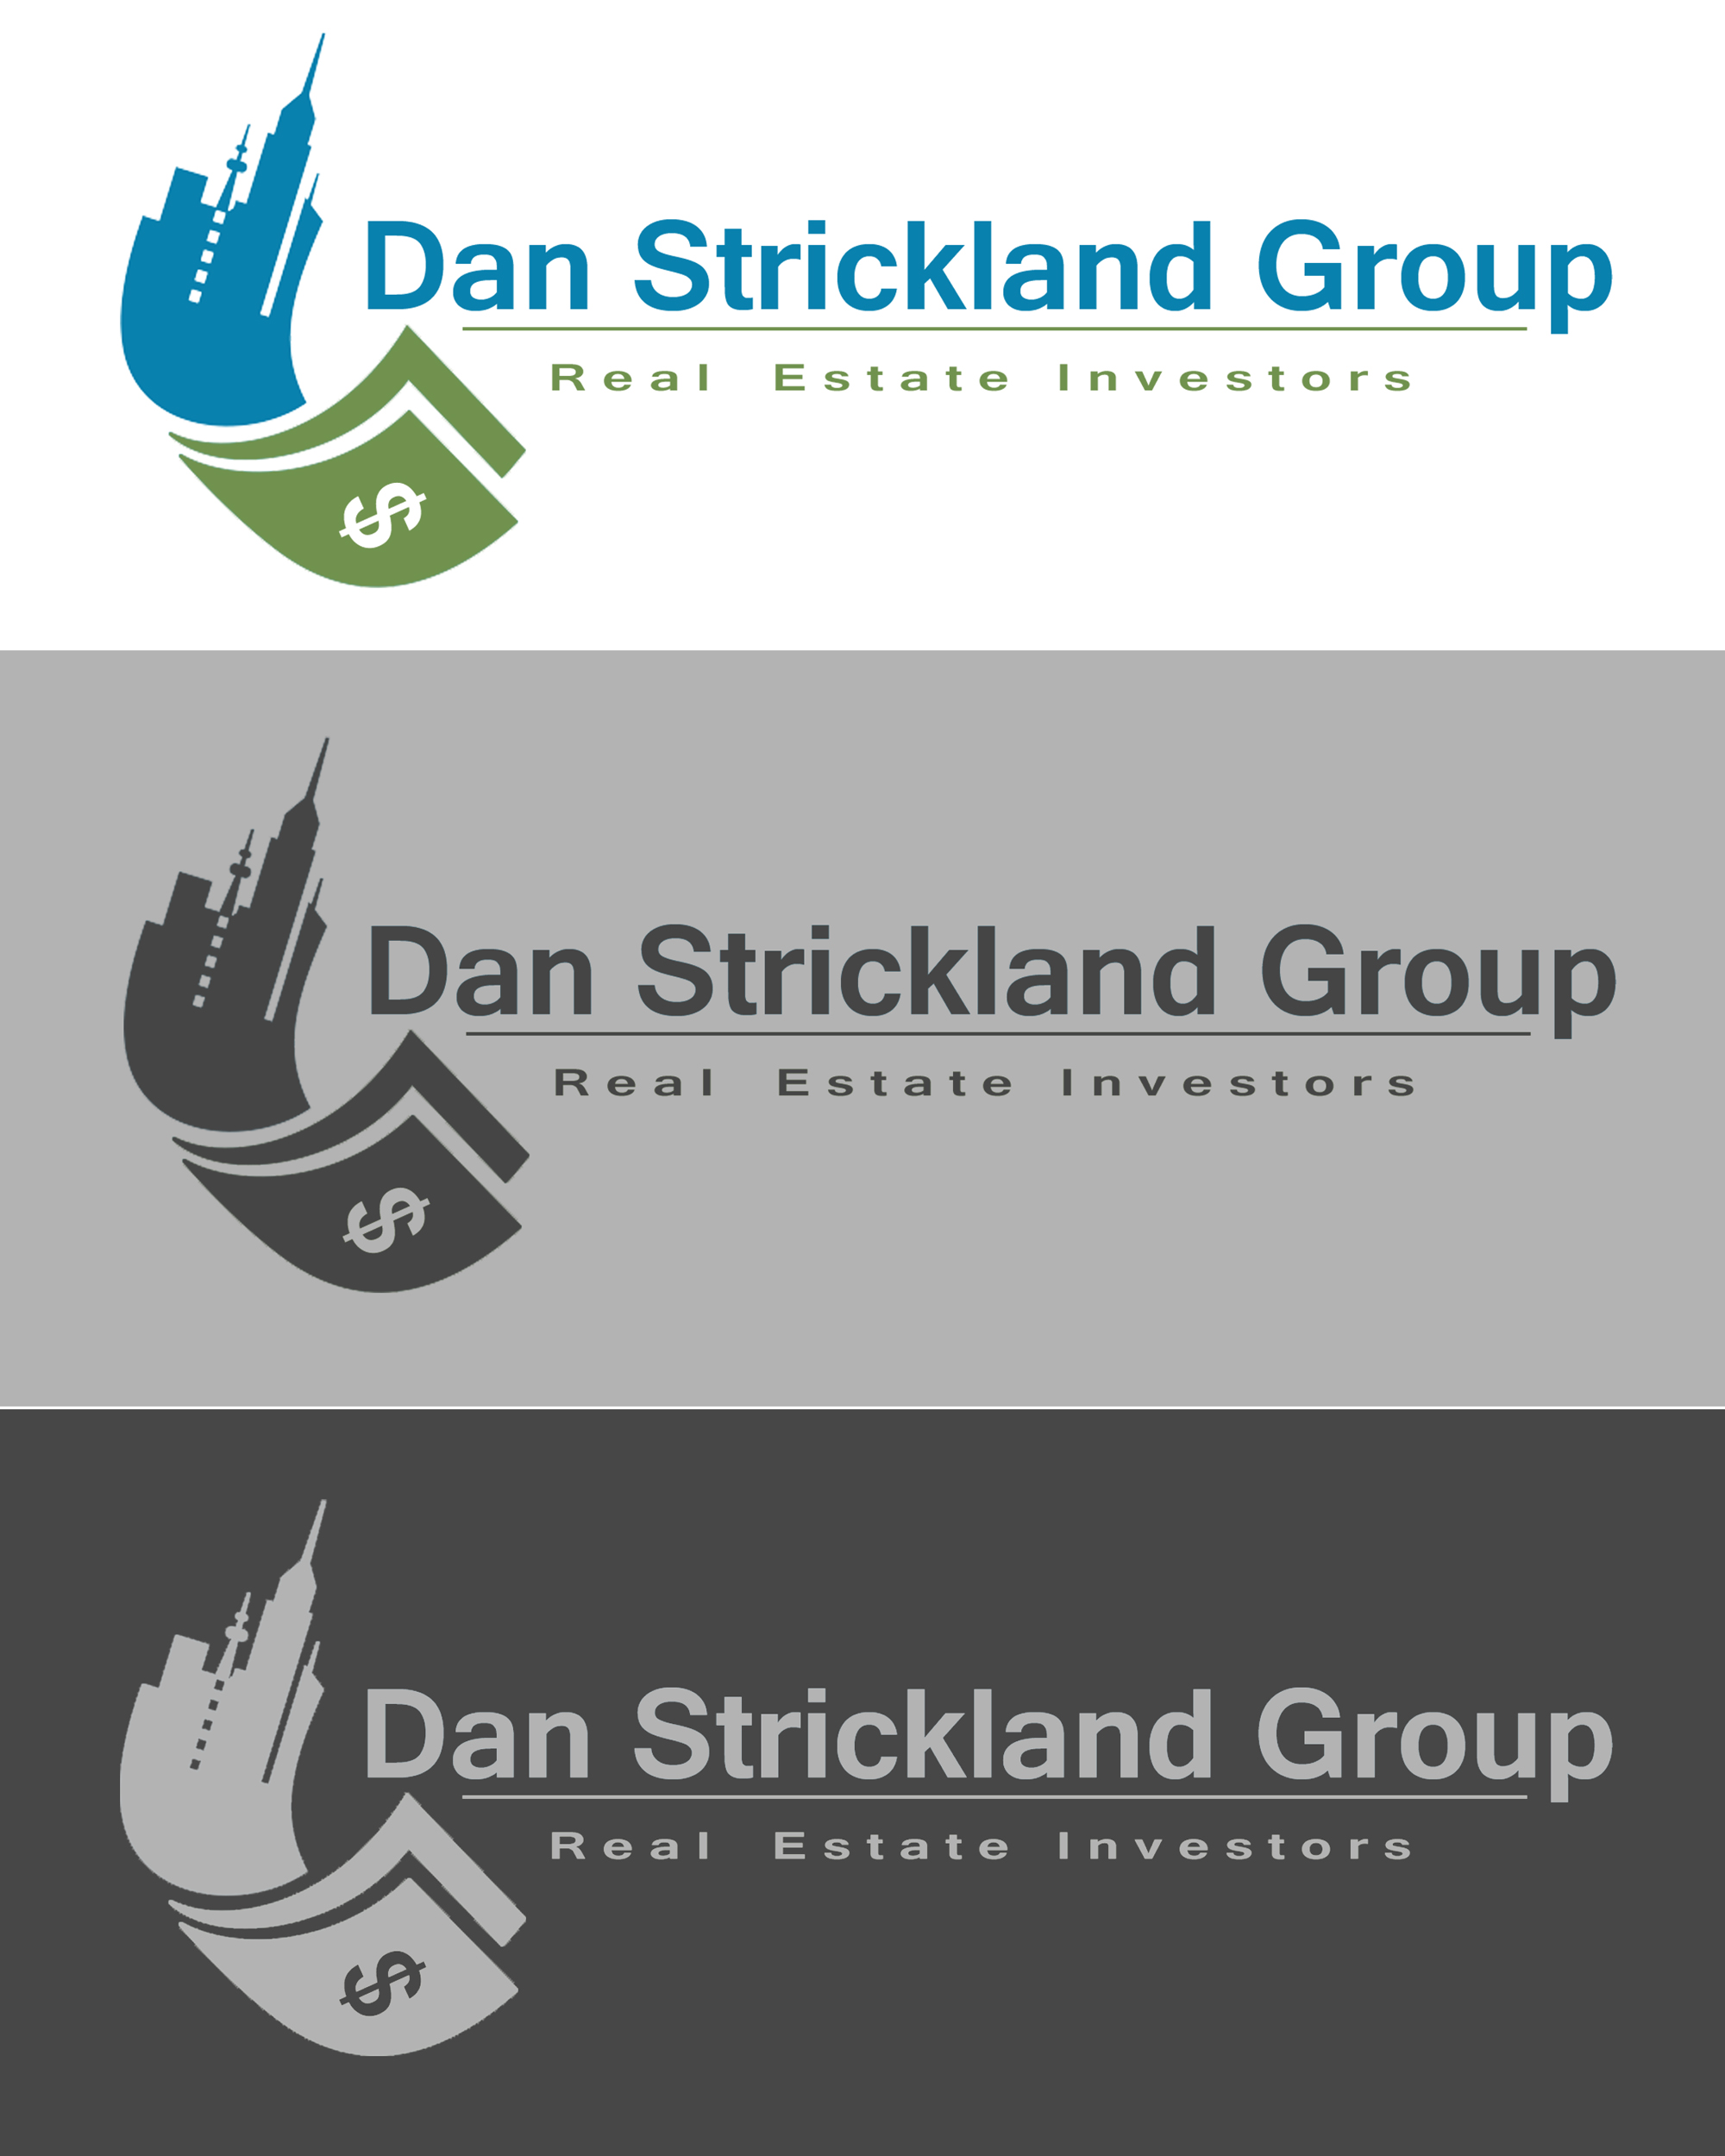 Logo Design by Jack Rajgor - Entry No. 239 in the Logo Design Contest Creative Logo Design for The Dan Strickland Group.